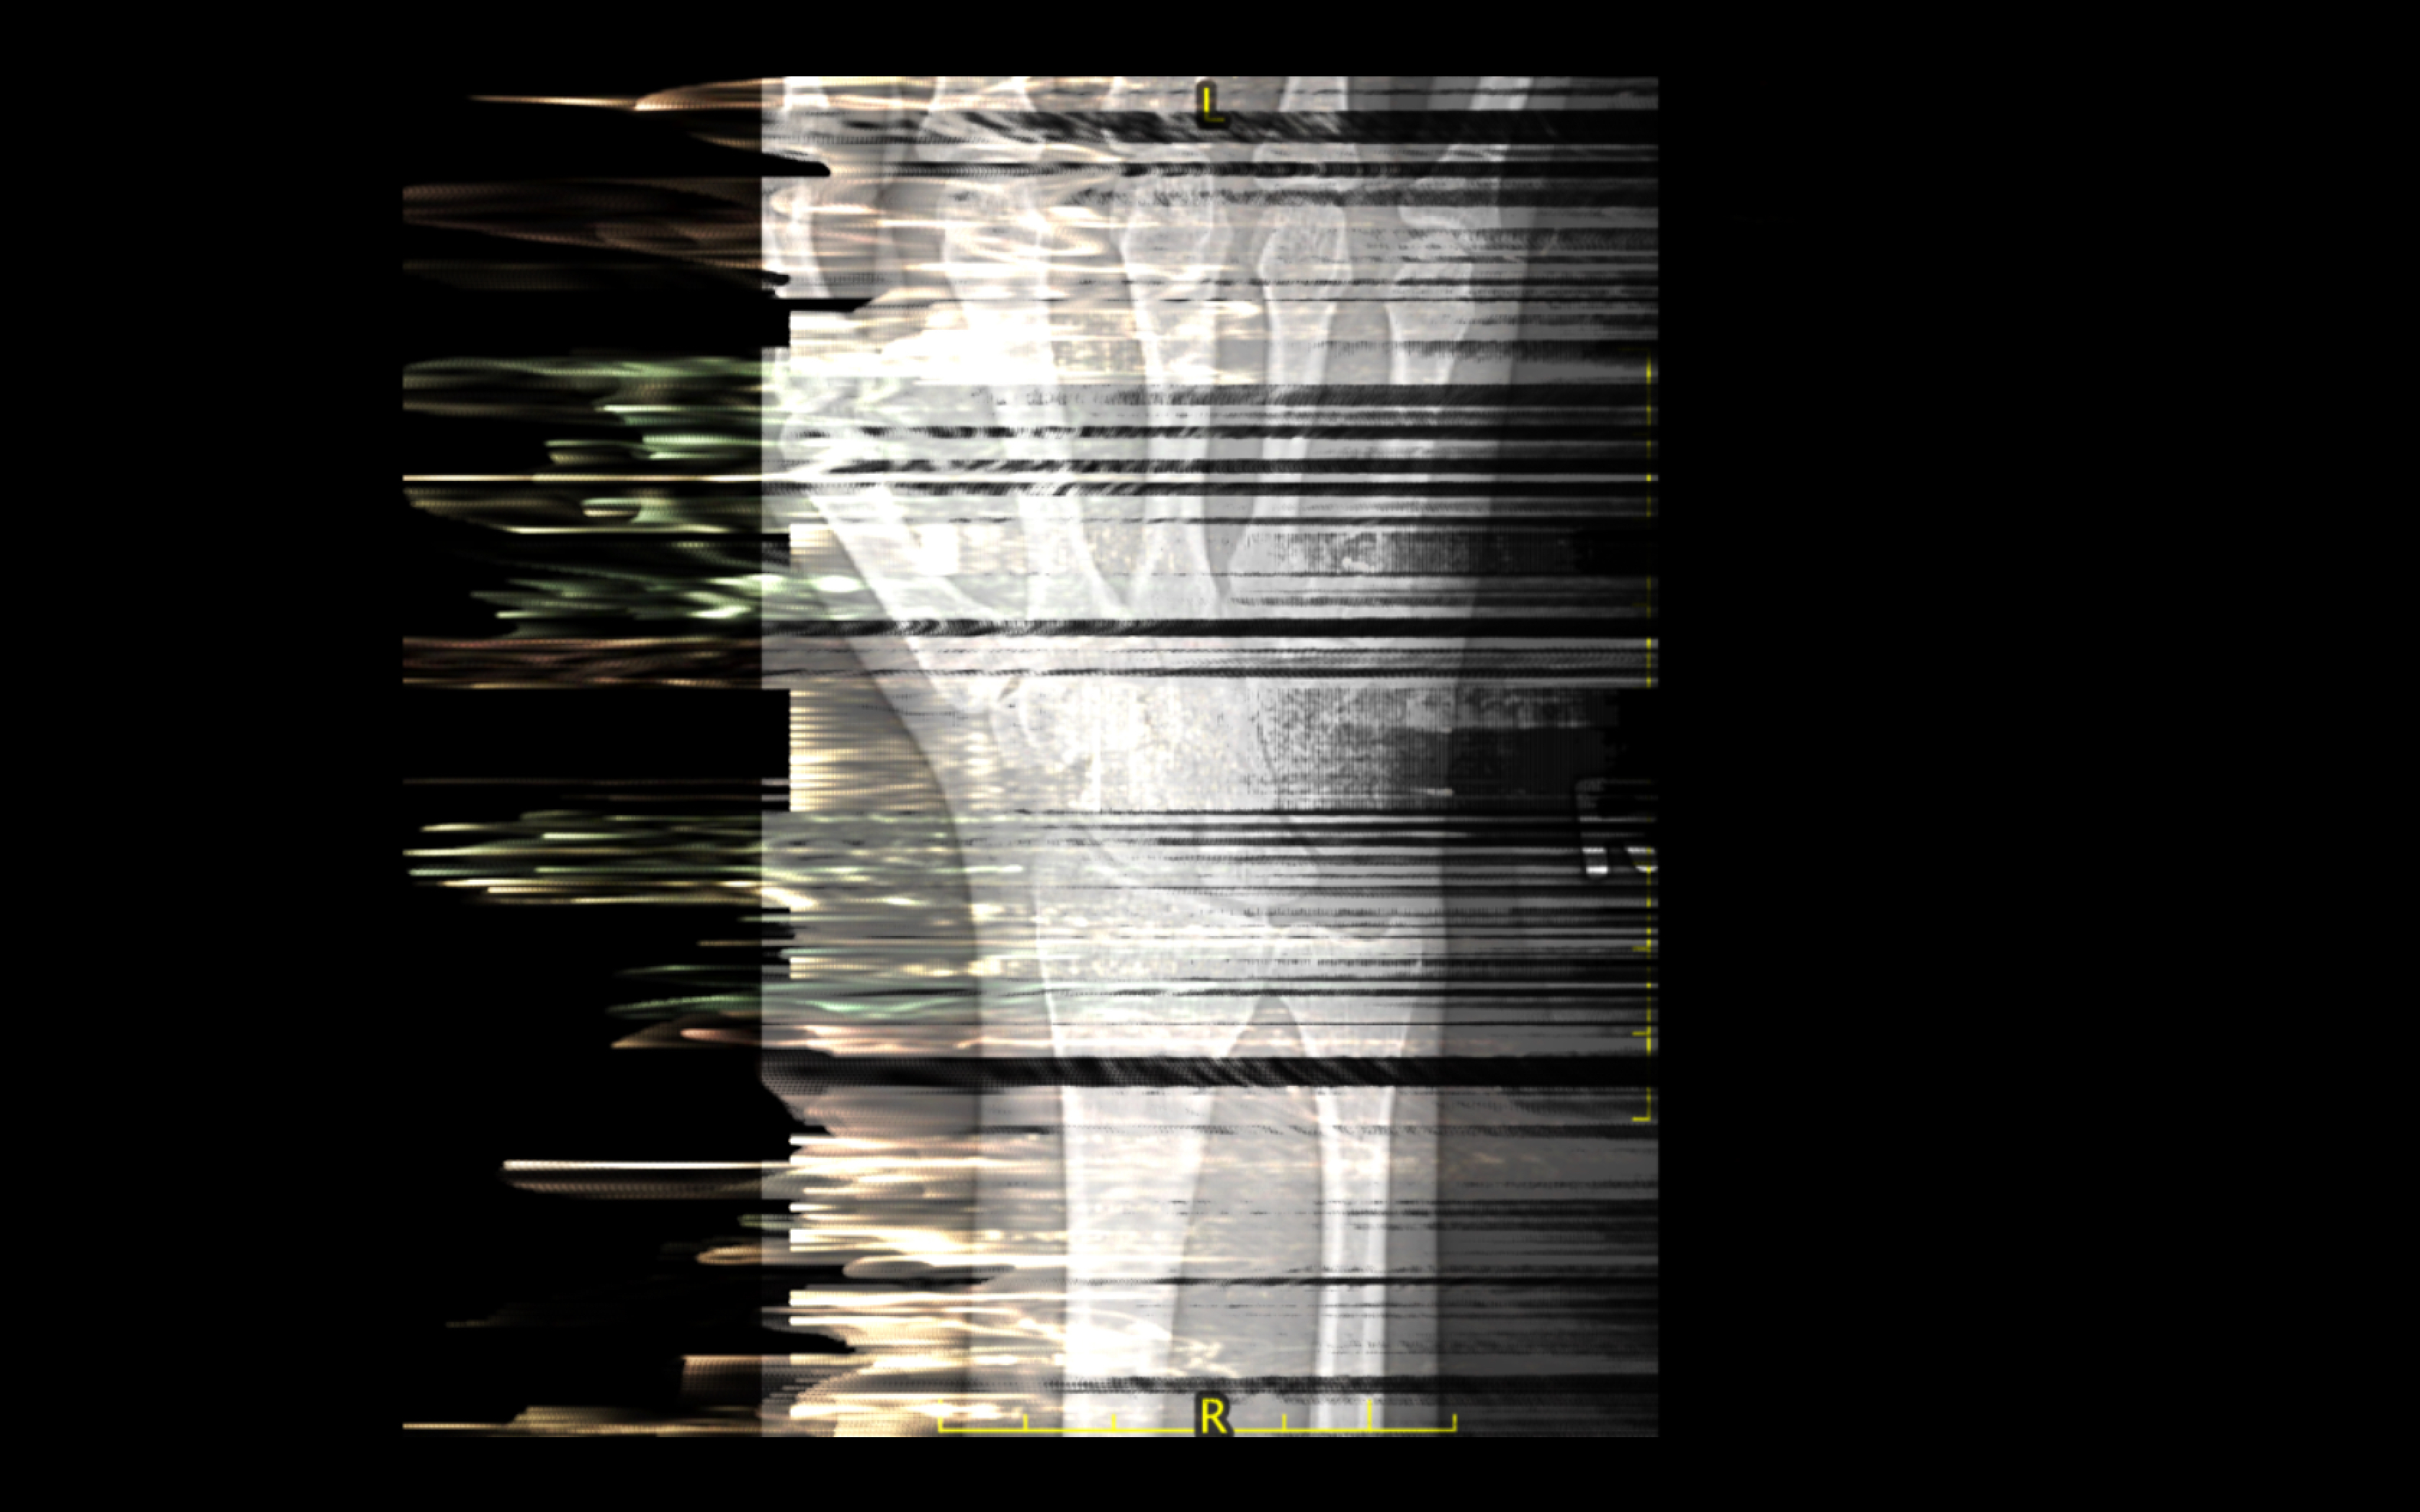 Digital art image of hand x-ray distorted through image processing